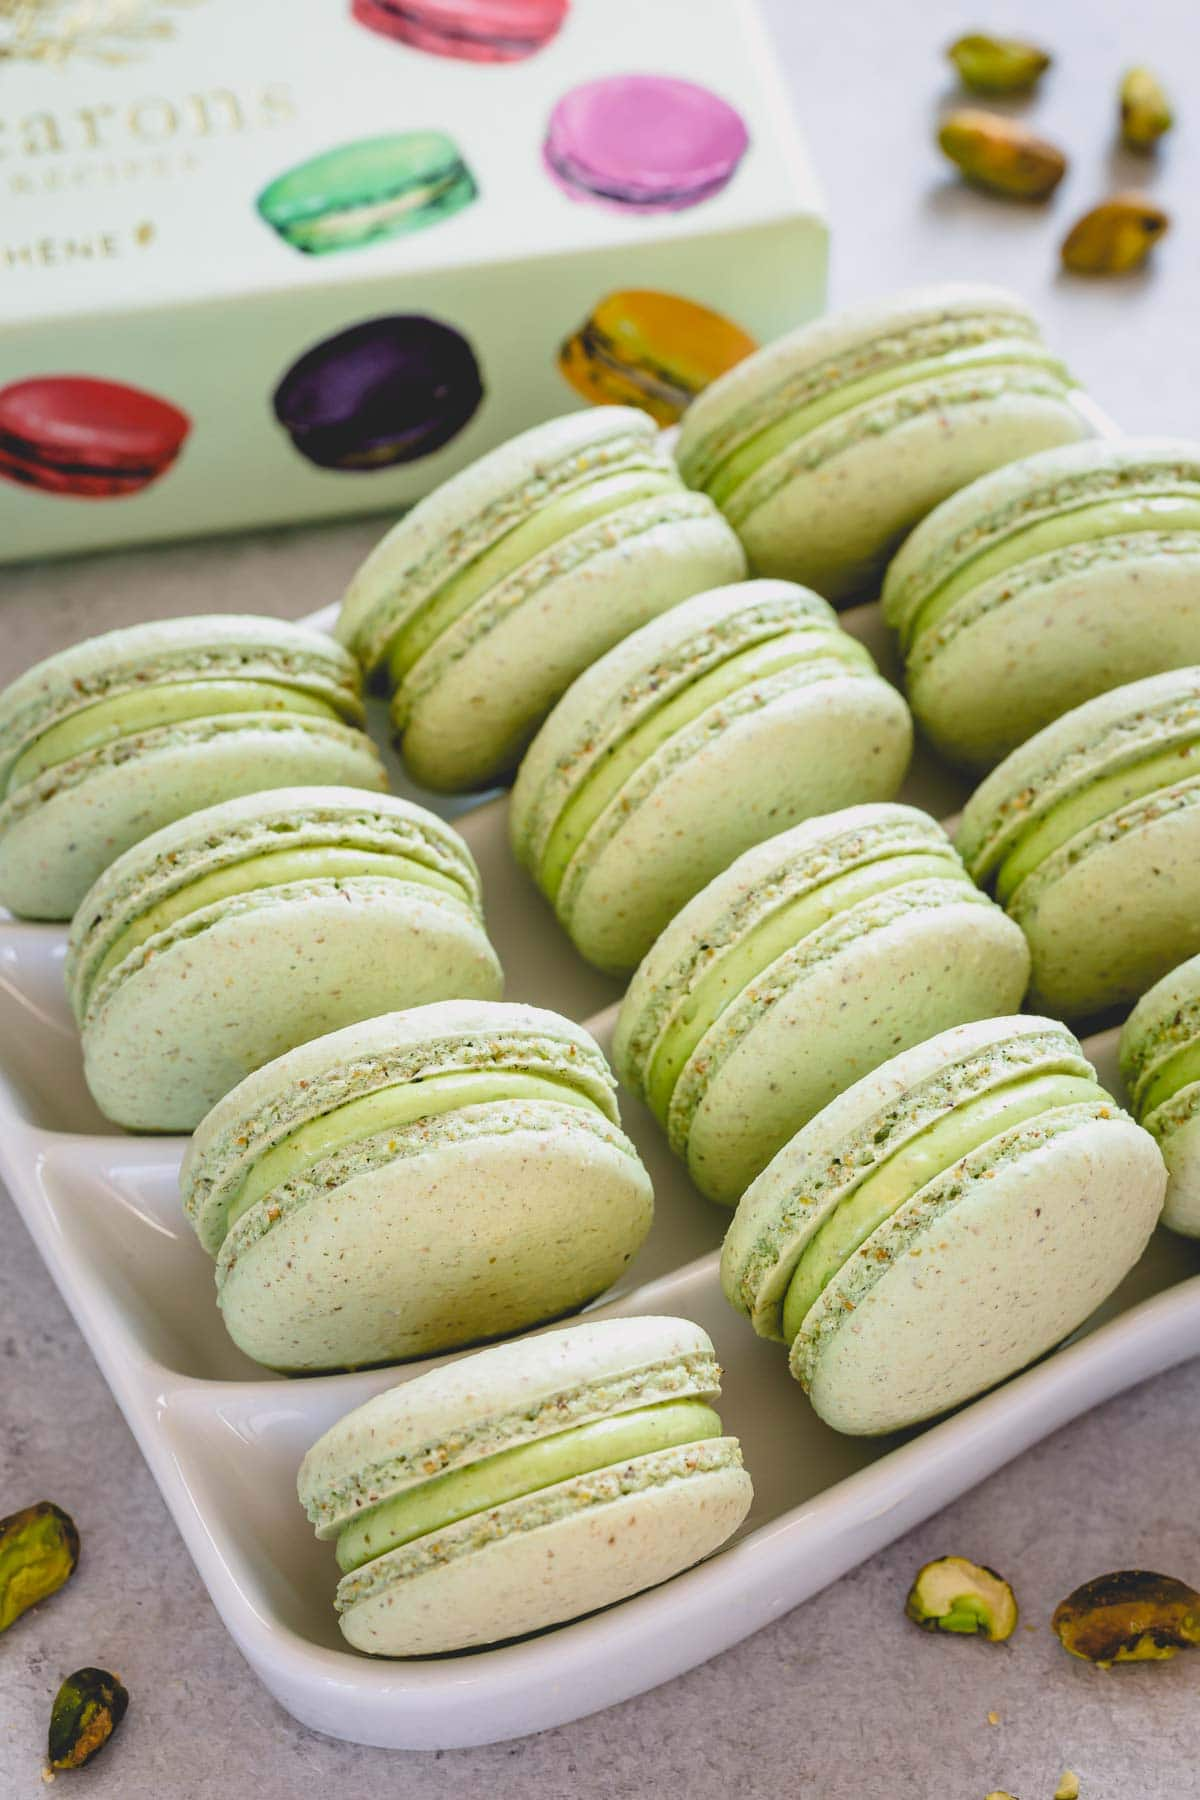 pistachio macarons on a serving plate